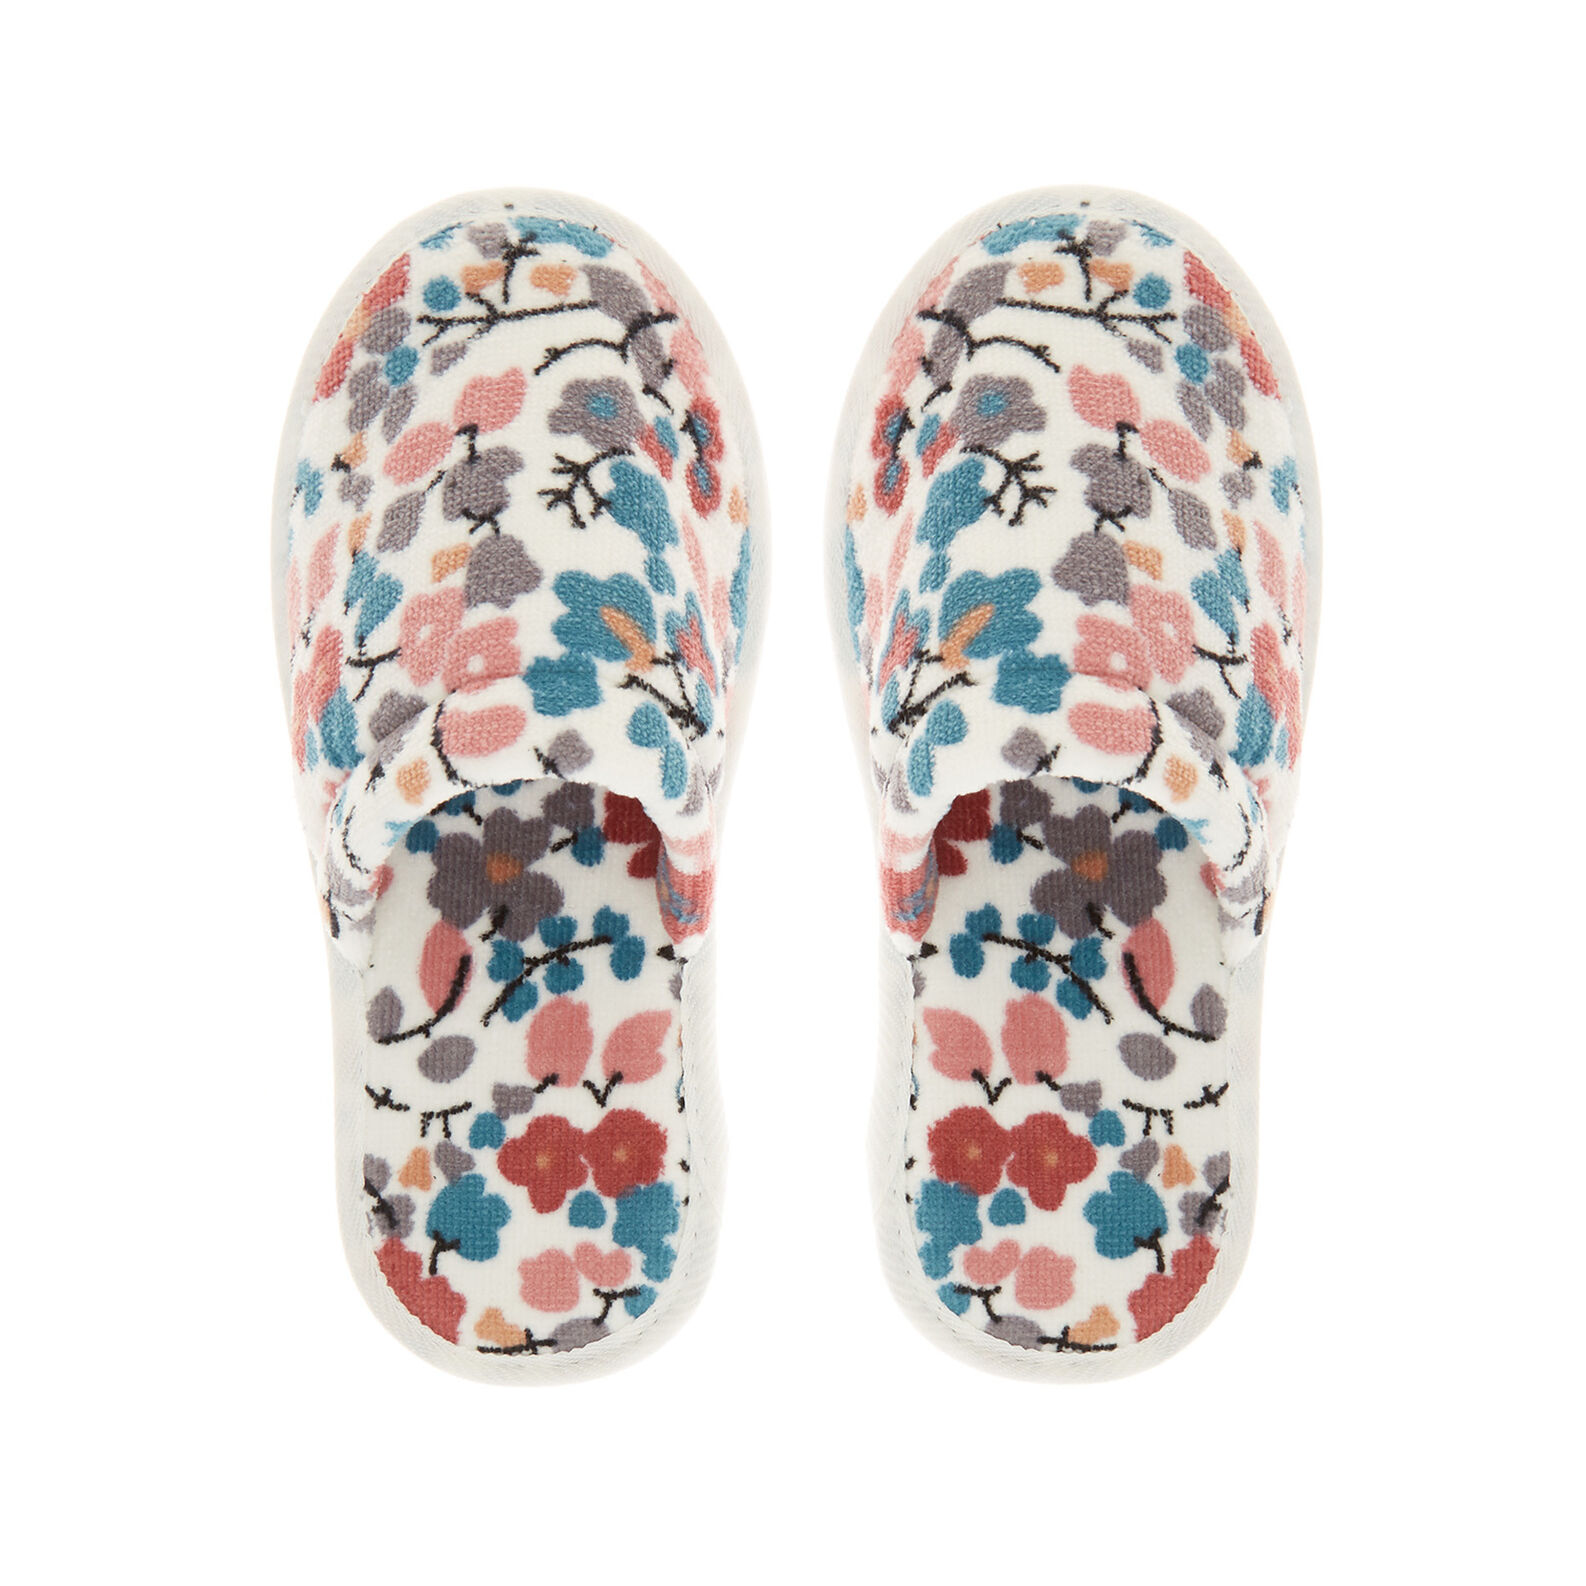 Cotton velour slippers with floral print